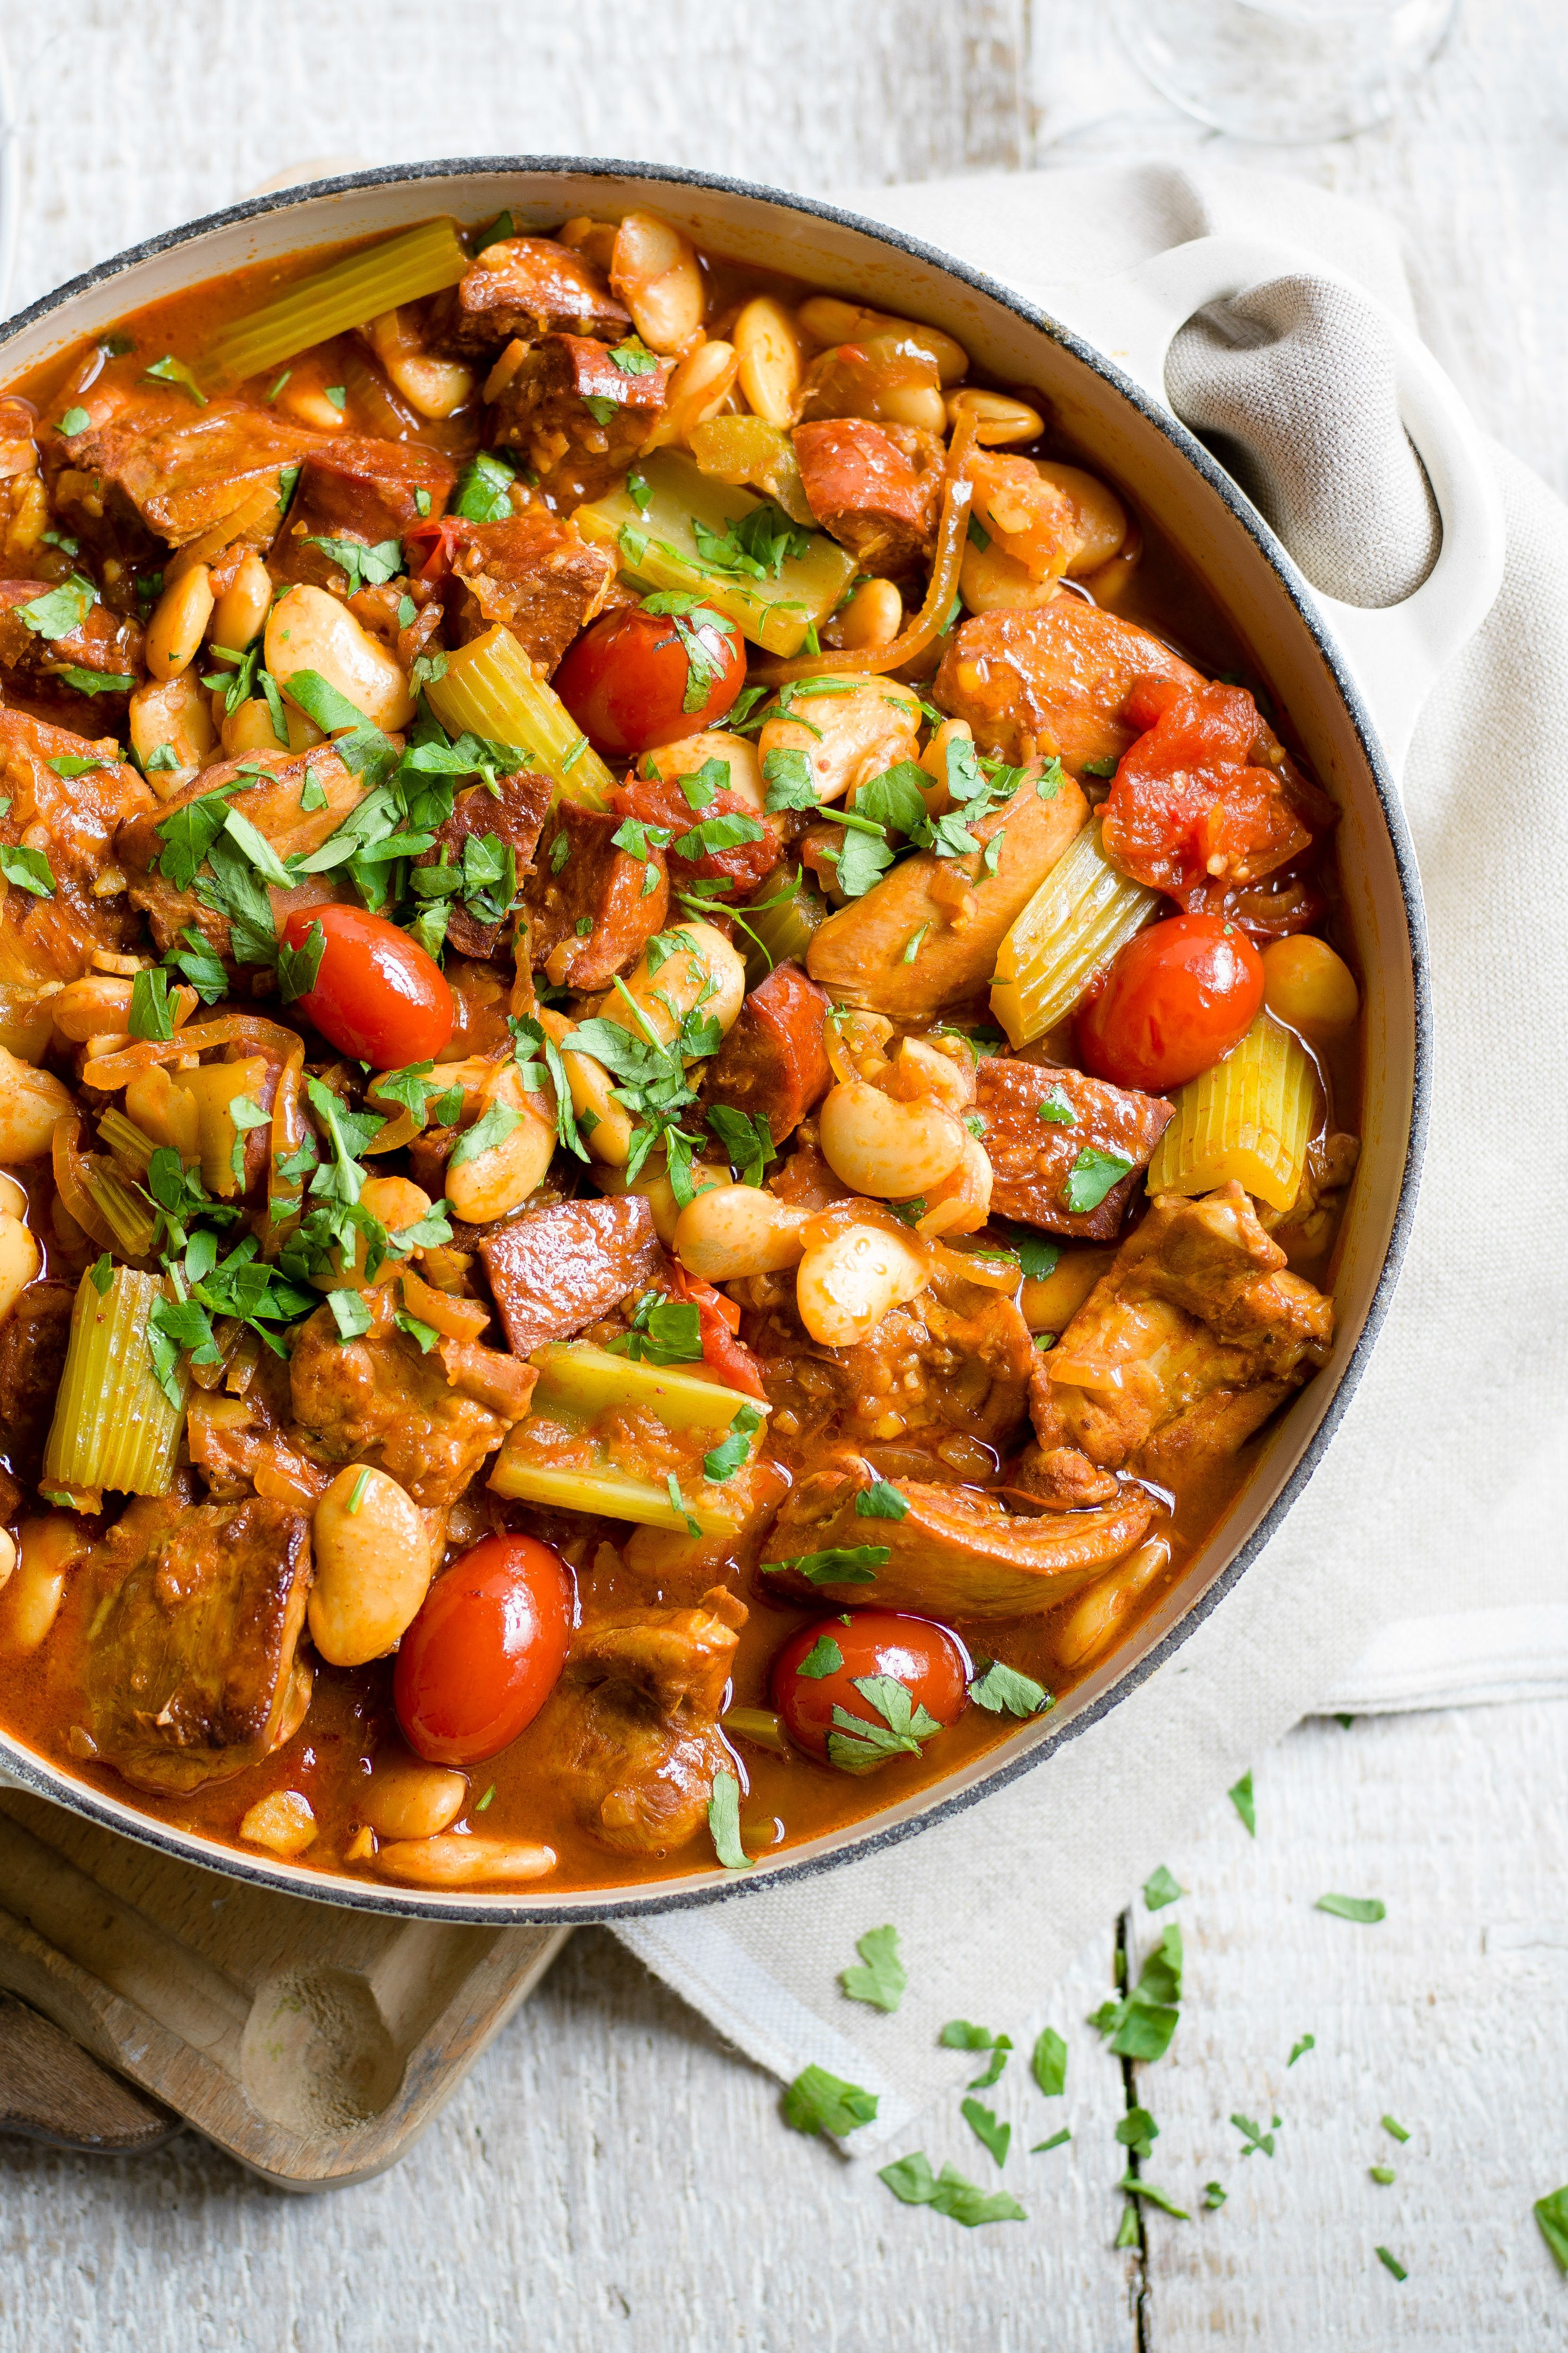 Cooked In A Rich Tomato Sauce With Sweet Paprika And Smoky Chorizo This Easy Slow Slow Cooker Chicken Casserole Slow Cooker Chicken Chicken Recipes Casserole